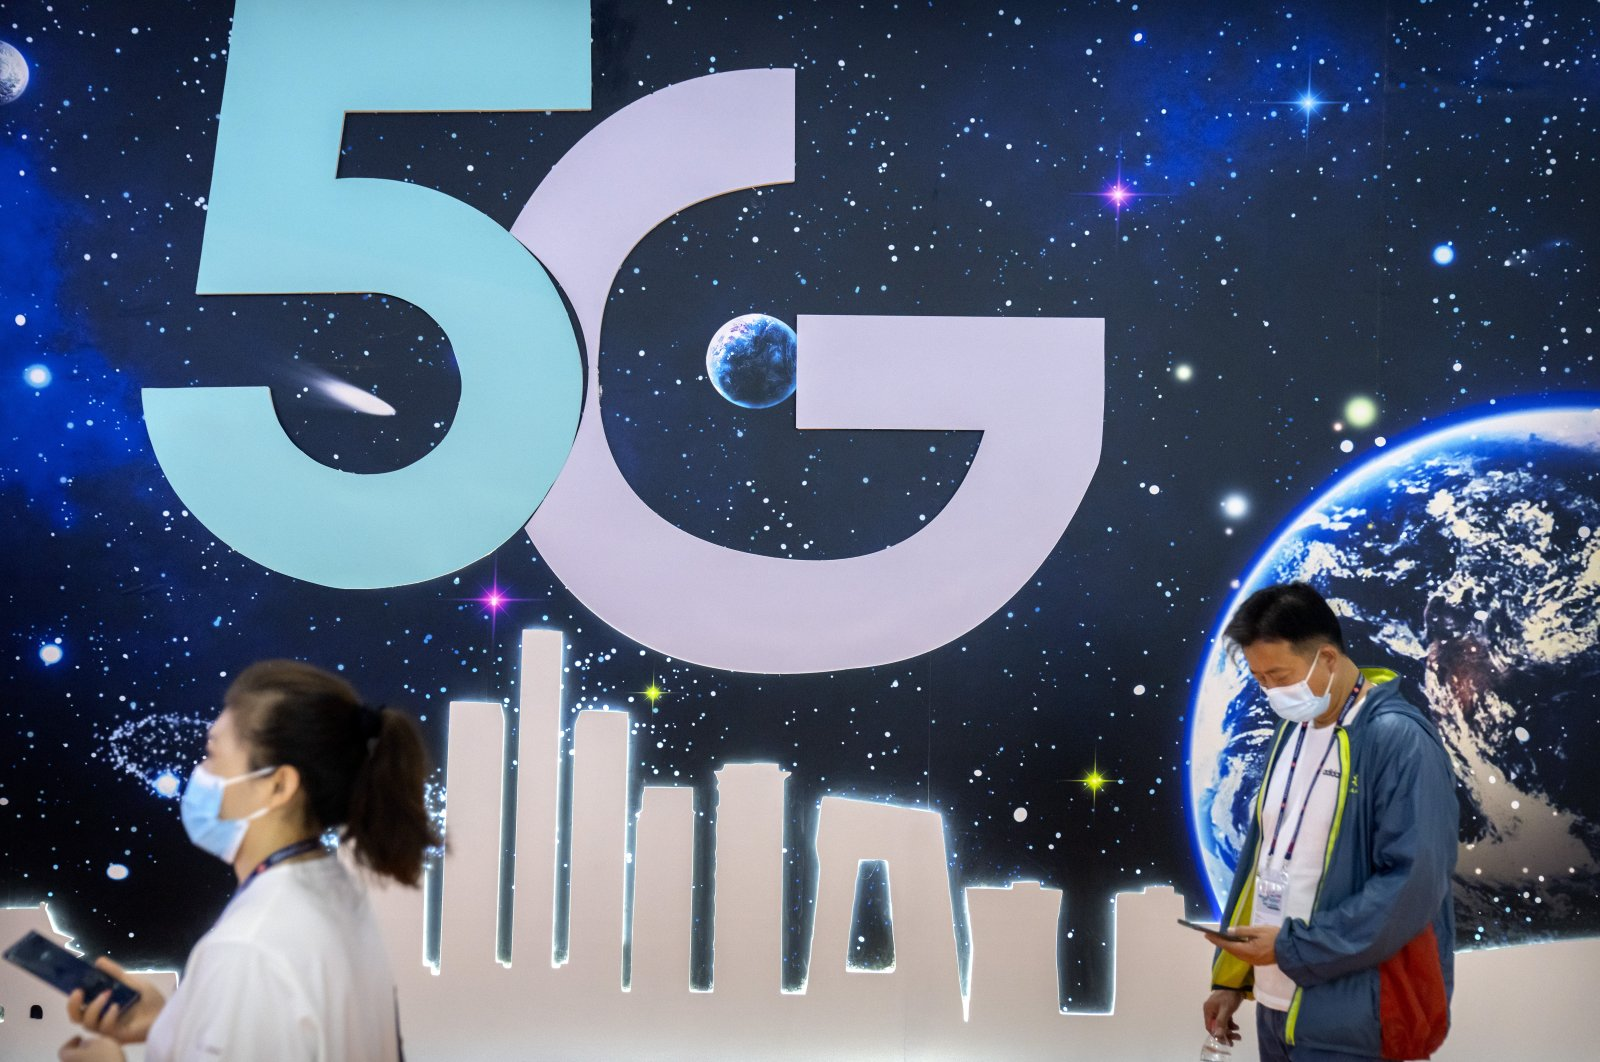 Attendees walk past a booth advertising 5G telecommunications services at the PT Expo in Beijing, China, Sept. 28, 2021. (AP Photo)